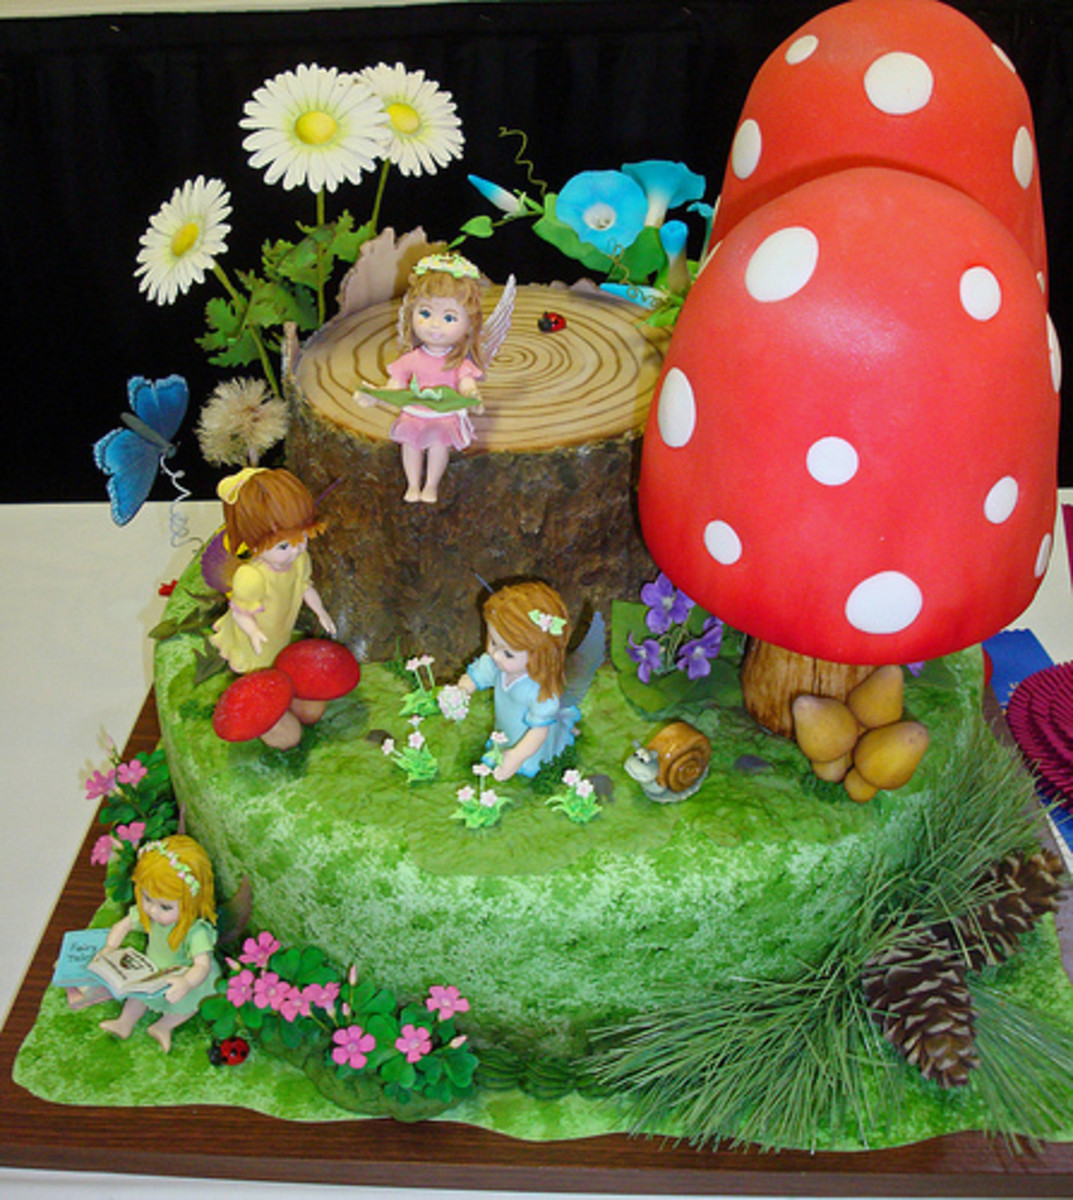 This is just a crazy cake.  I can't believe those fairies are edible!  They are so detailed and accurate.